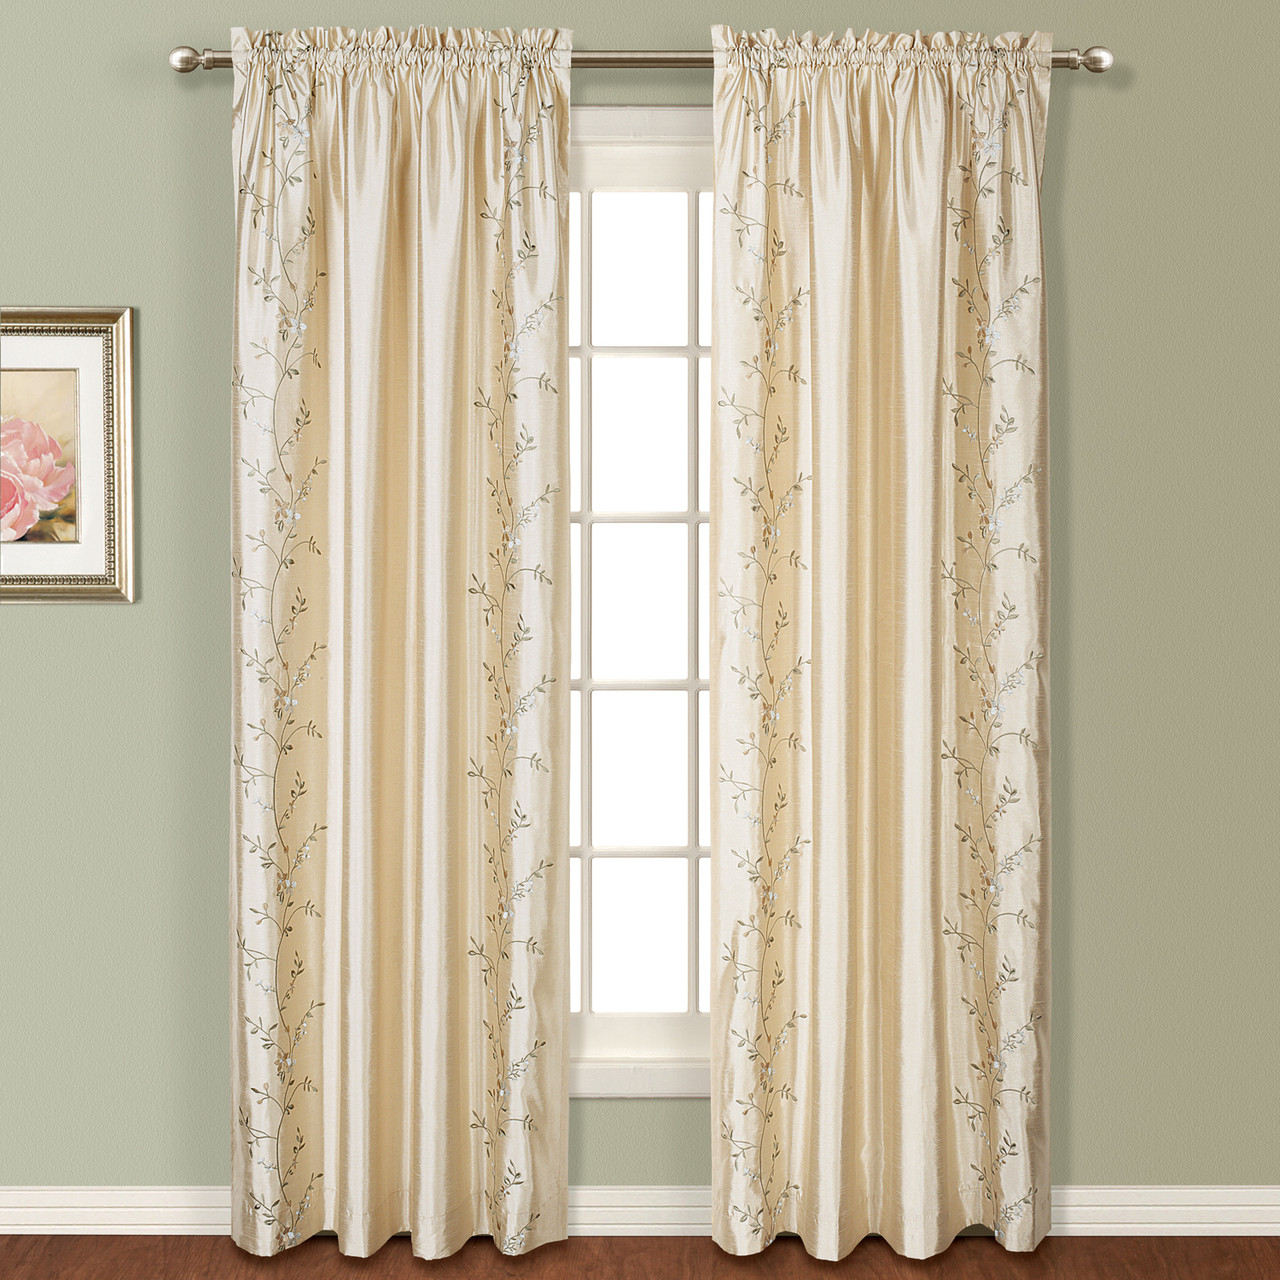 Addison Embroidered Rod Pocket Curtain Panel Natural